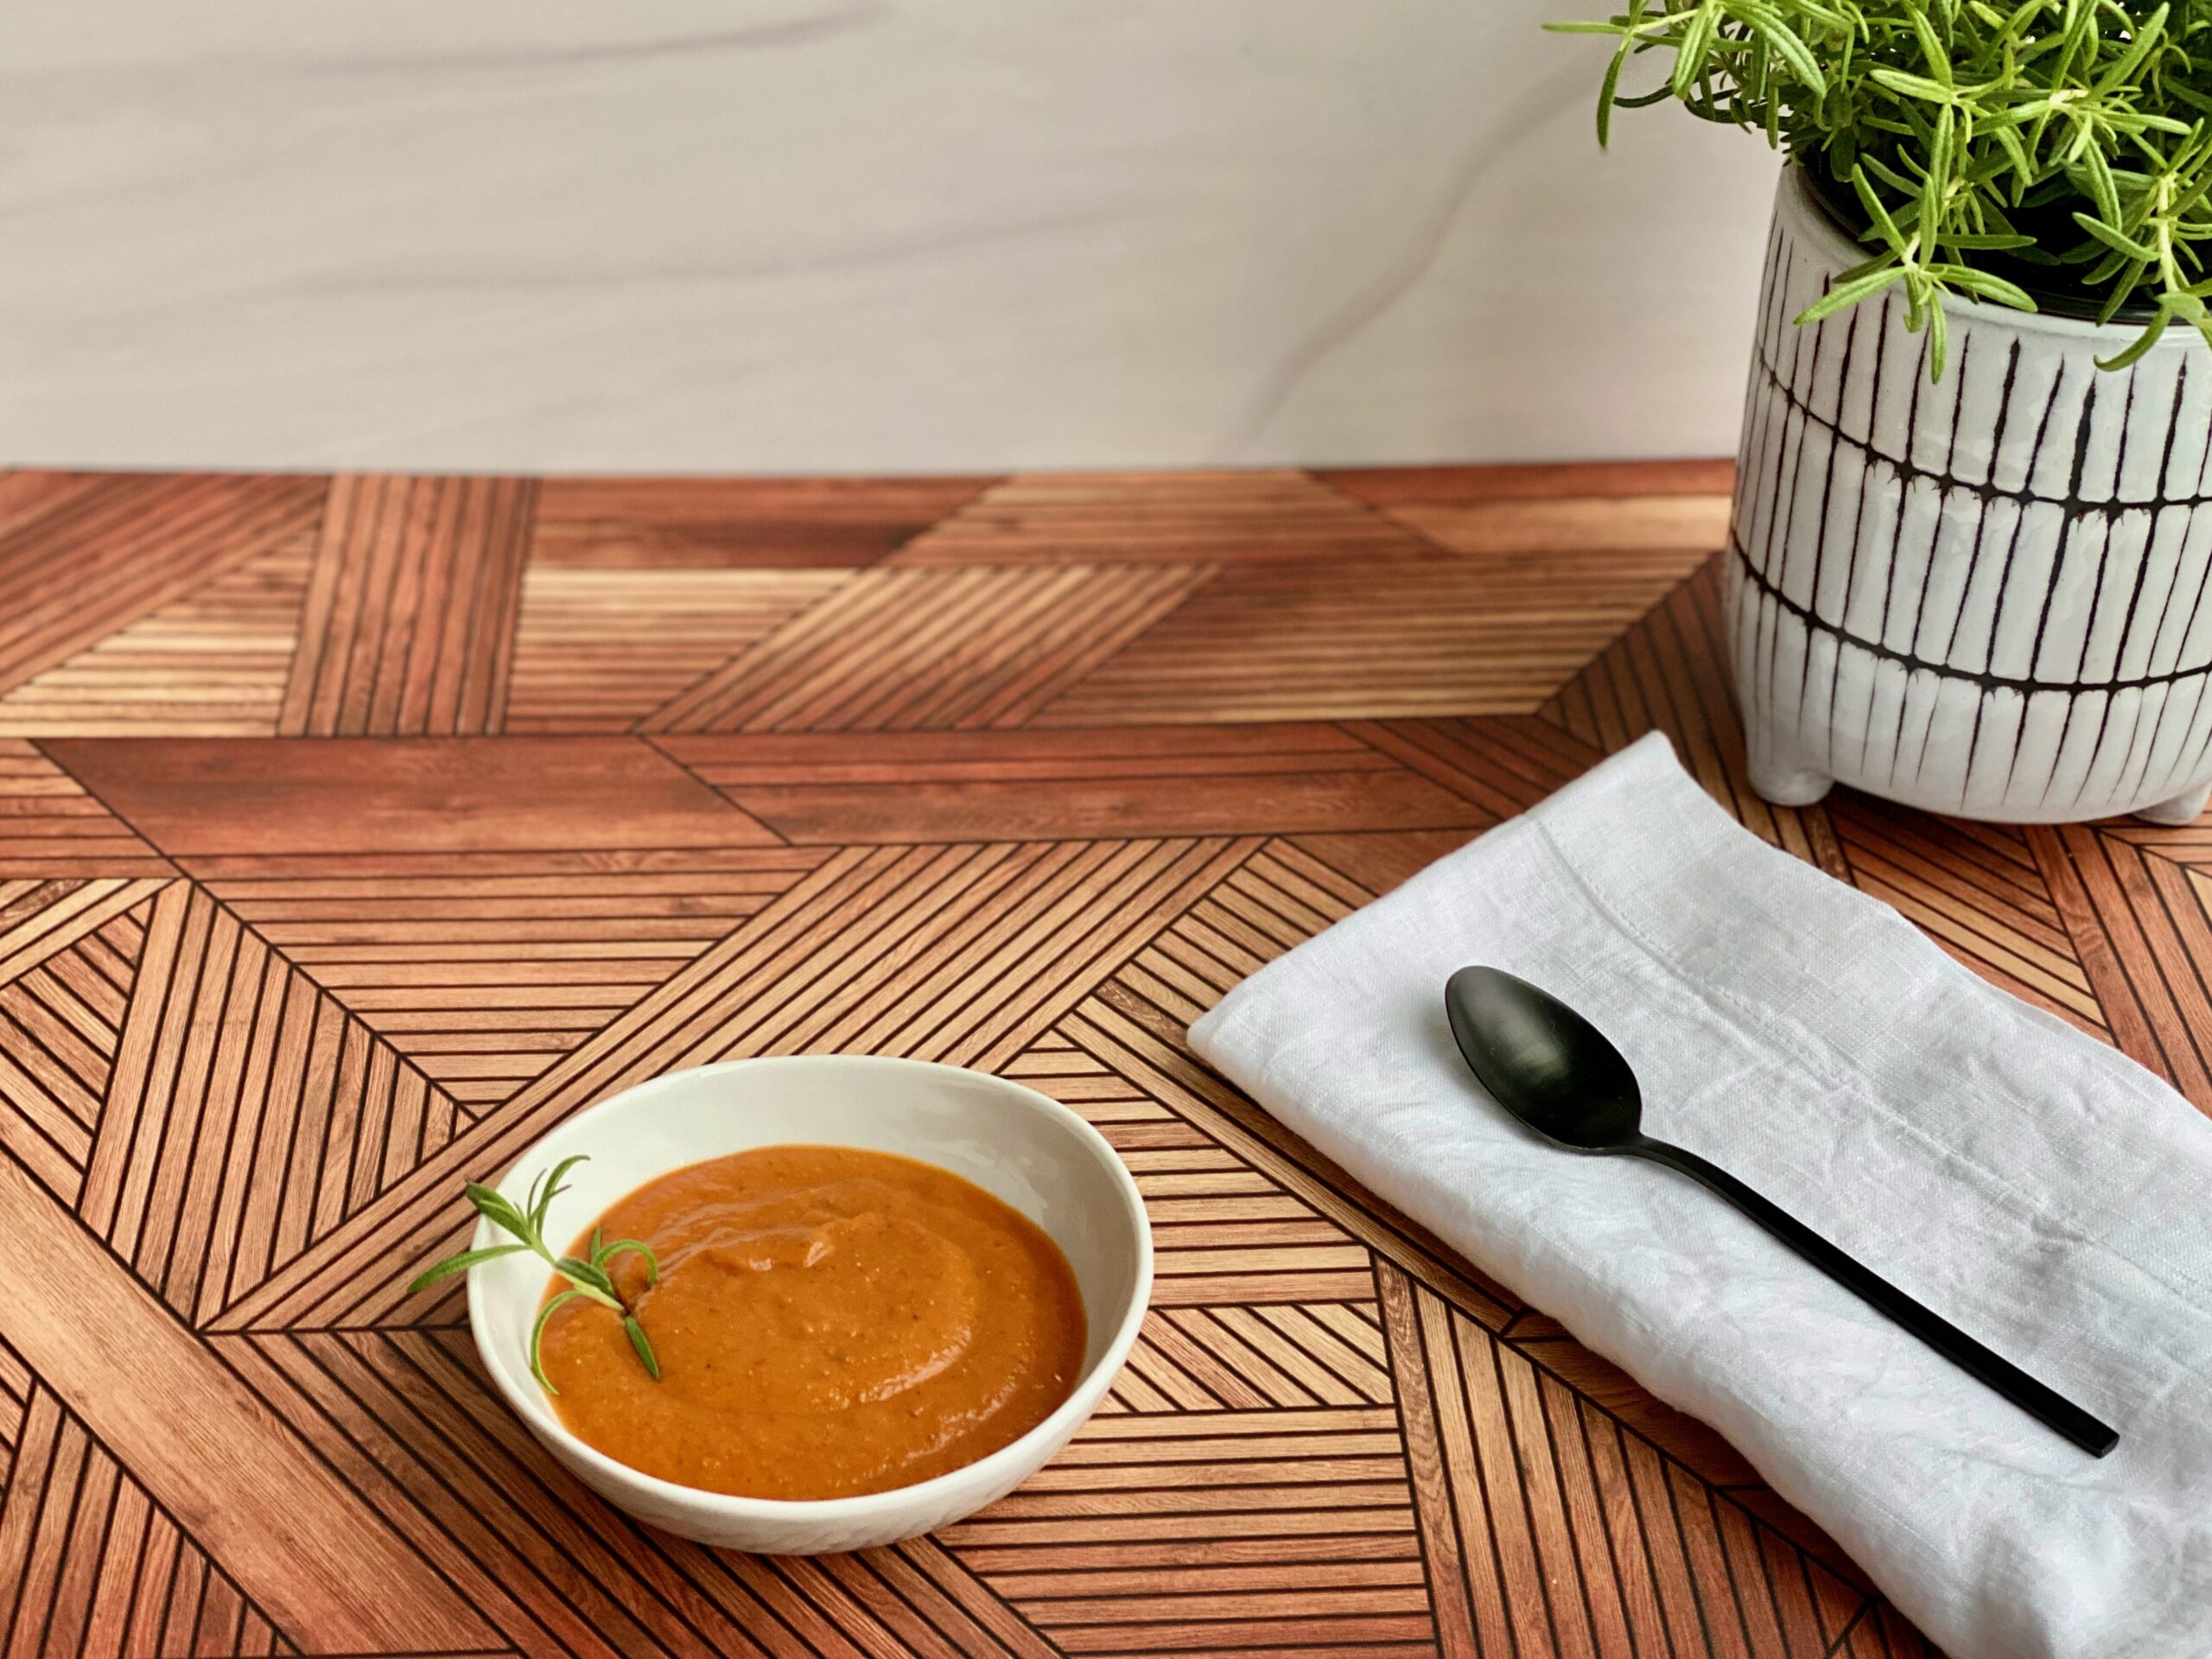 An image of a bowl of tomato soup with a rosemary plant in the background